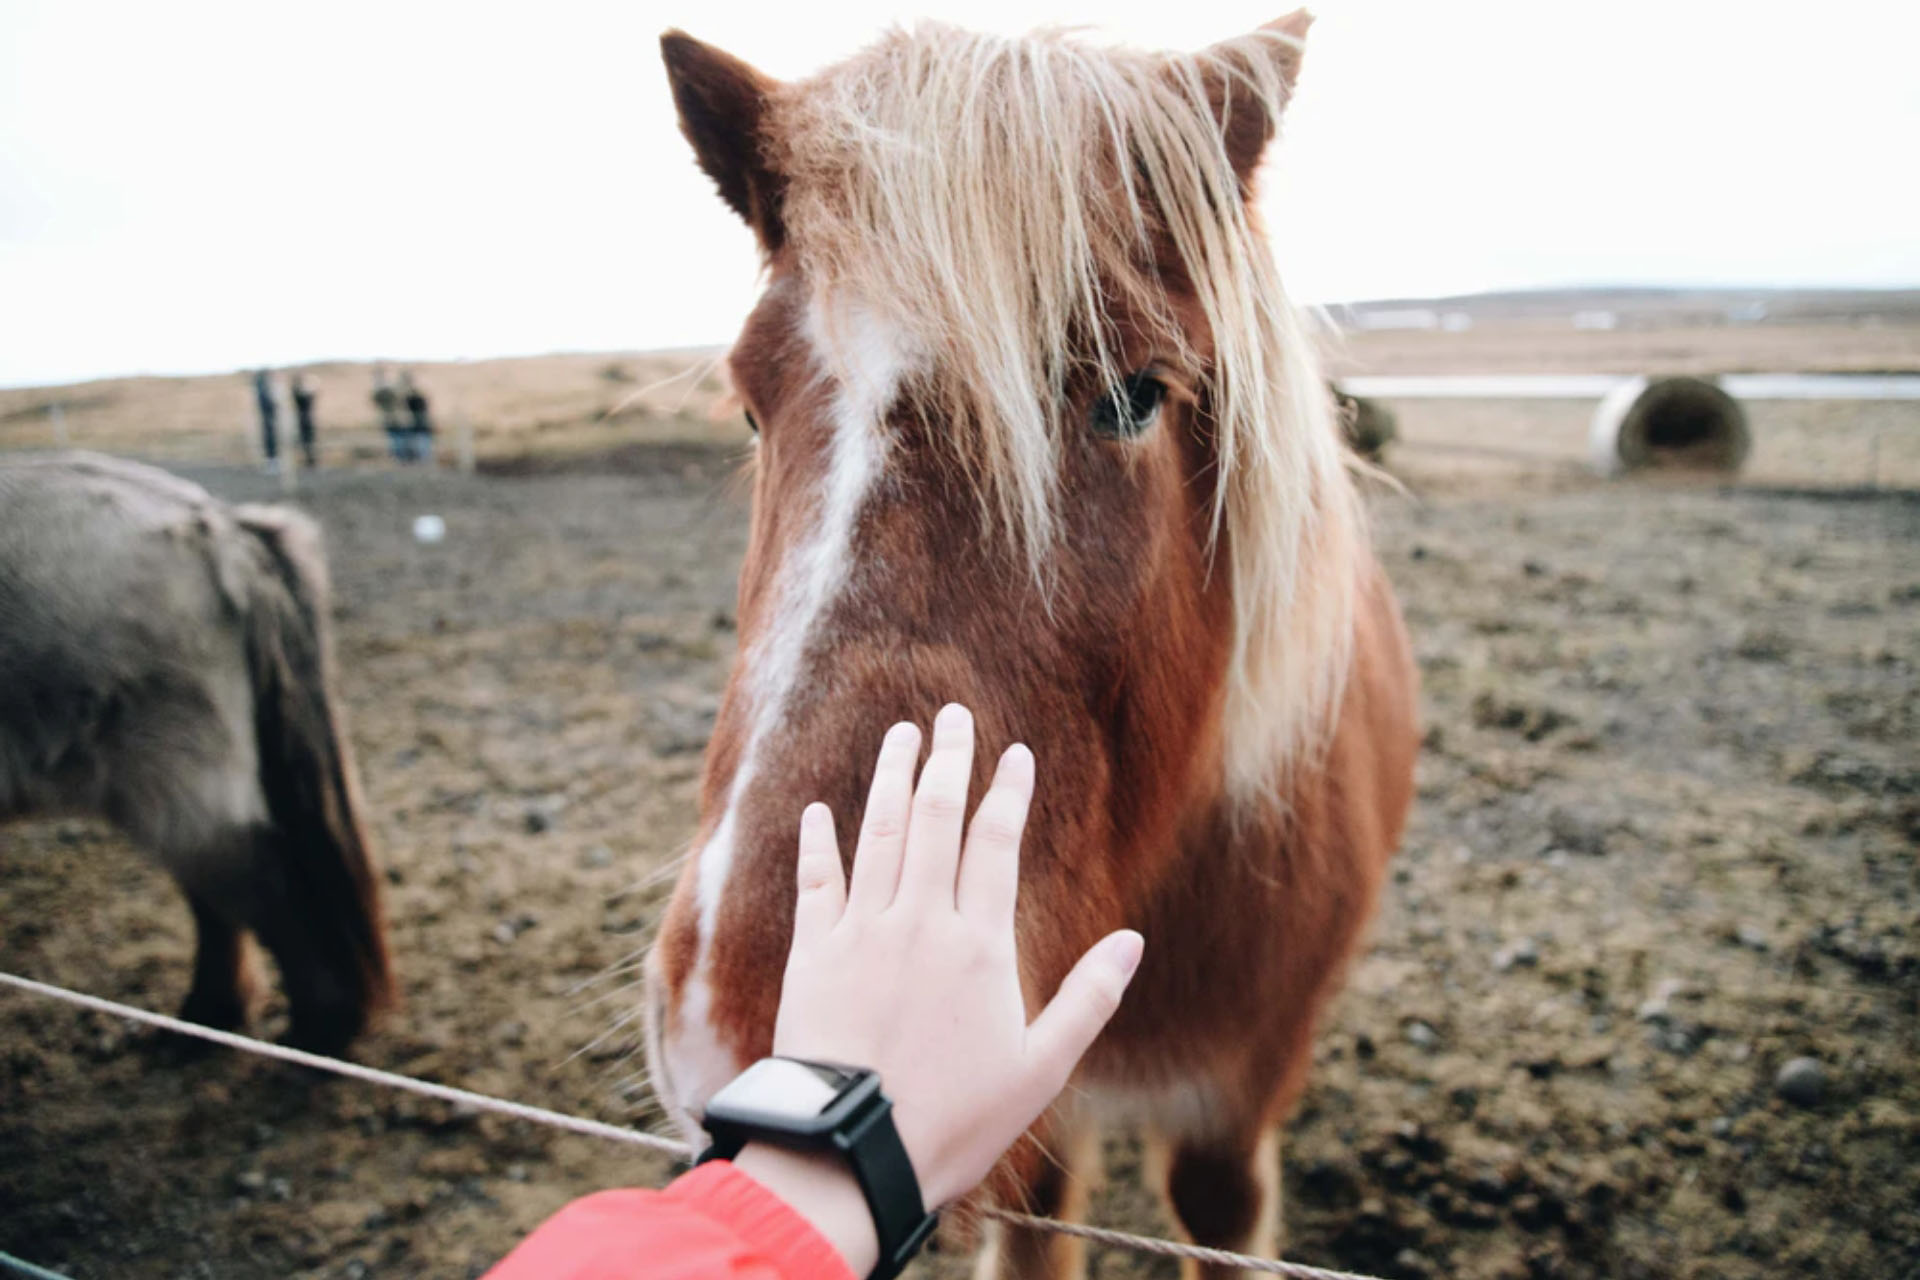 Horses are benefited by music. Read the whole research in association with Kendra Bruning